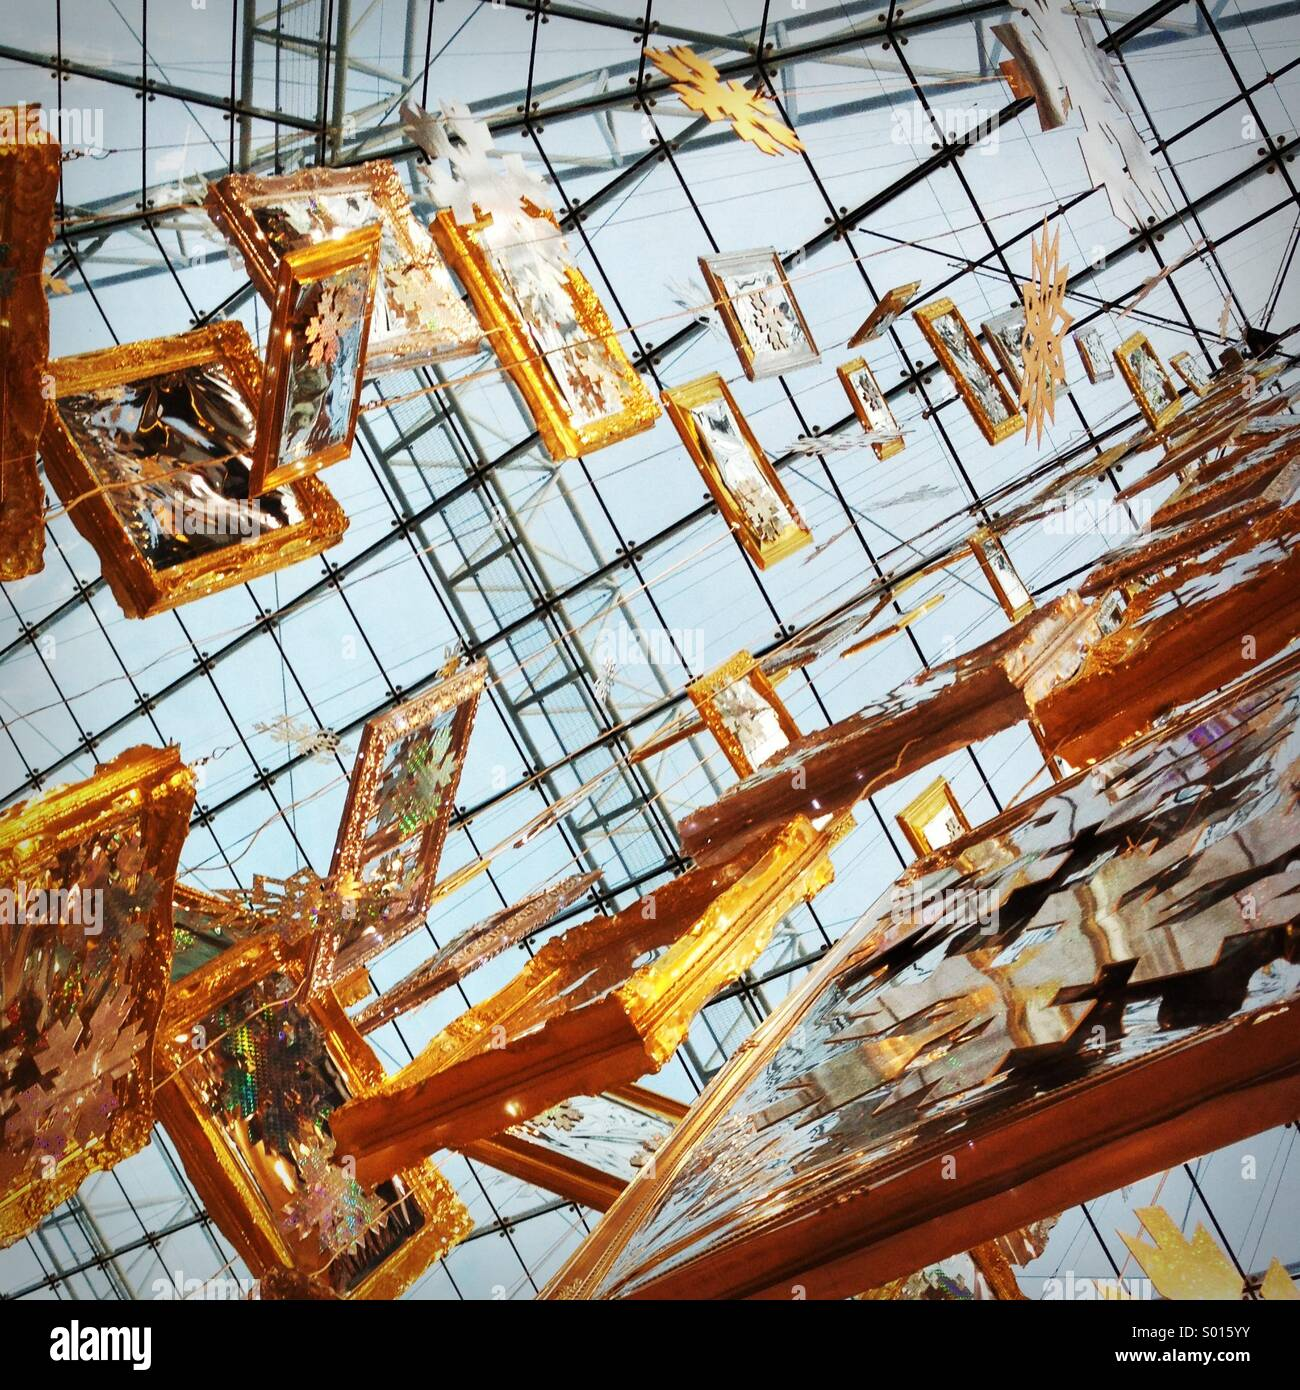 Installation Stockfotos & Installation Bilder - Alamy